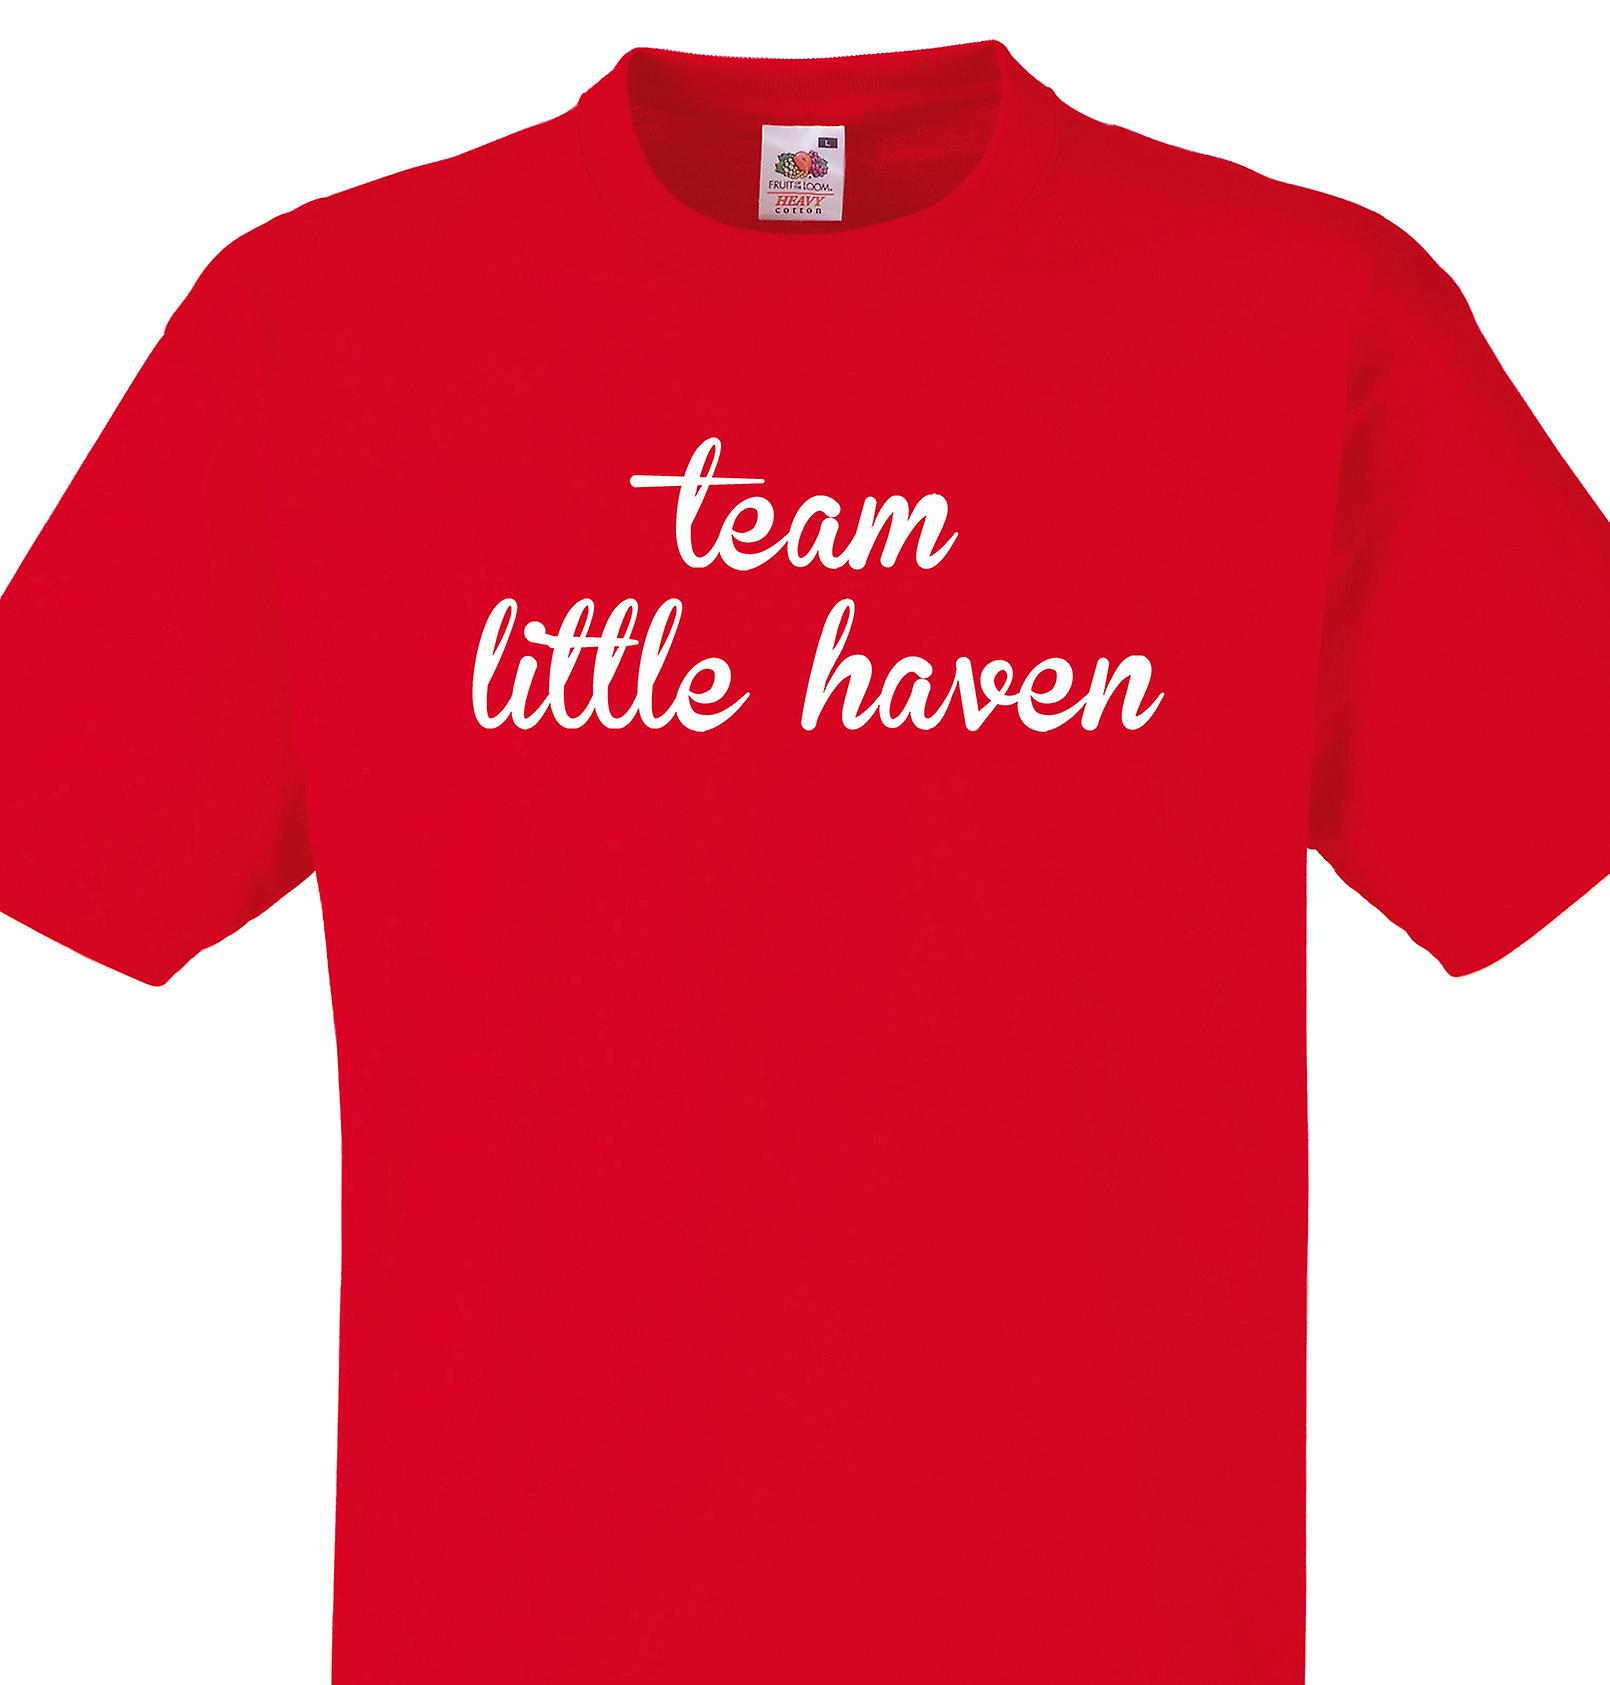 Team Little haven Red T shirt